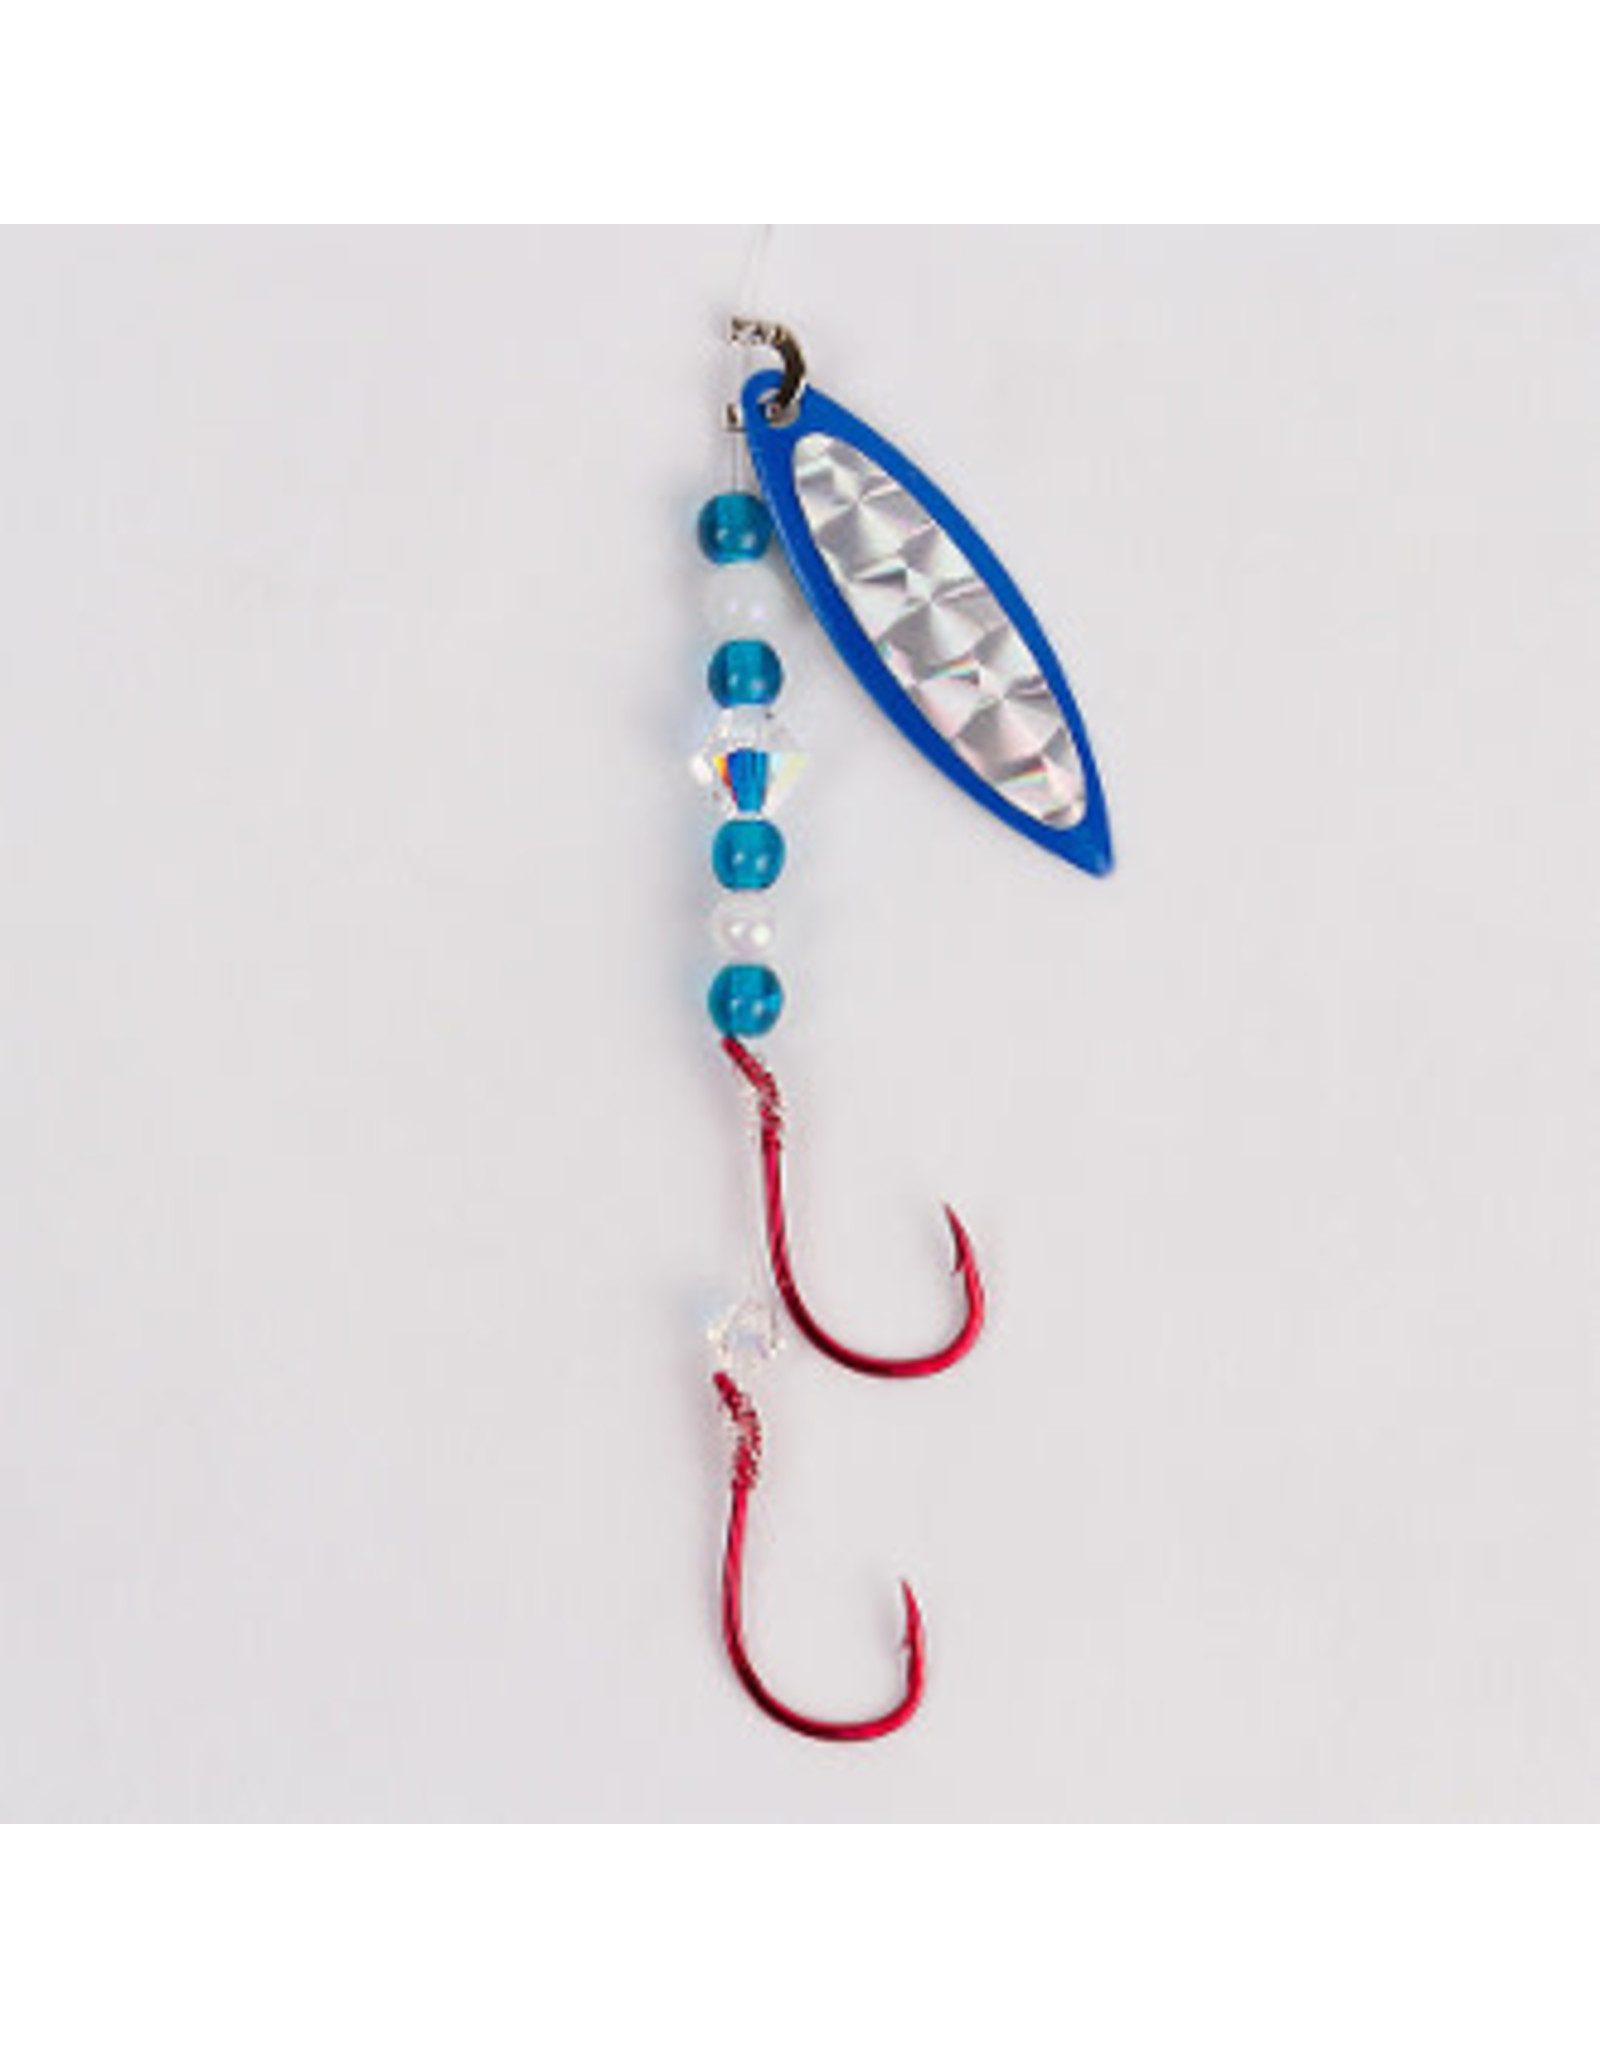 Kokabow Kokabow Fishing Tackle Spinner - Blue Heron